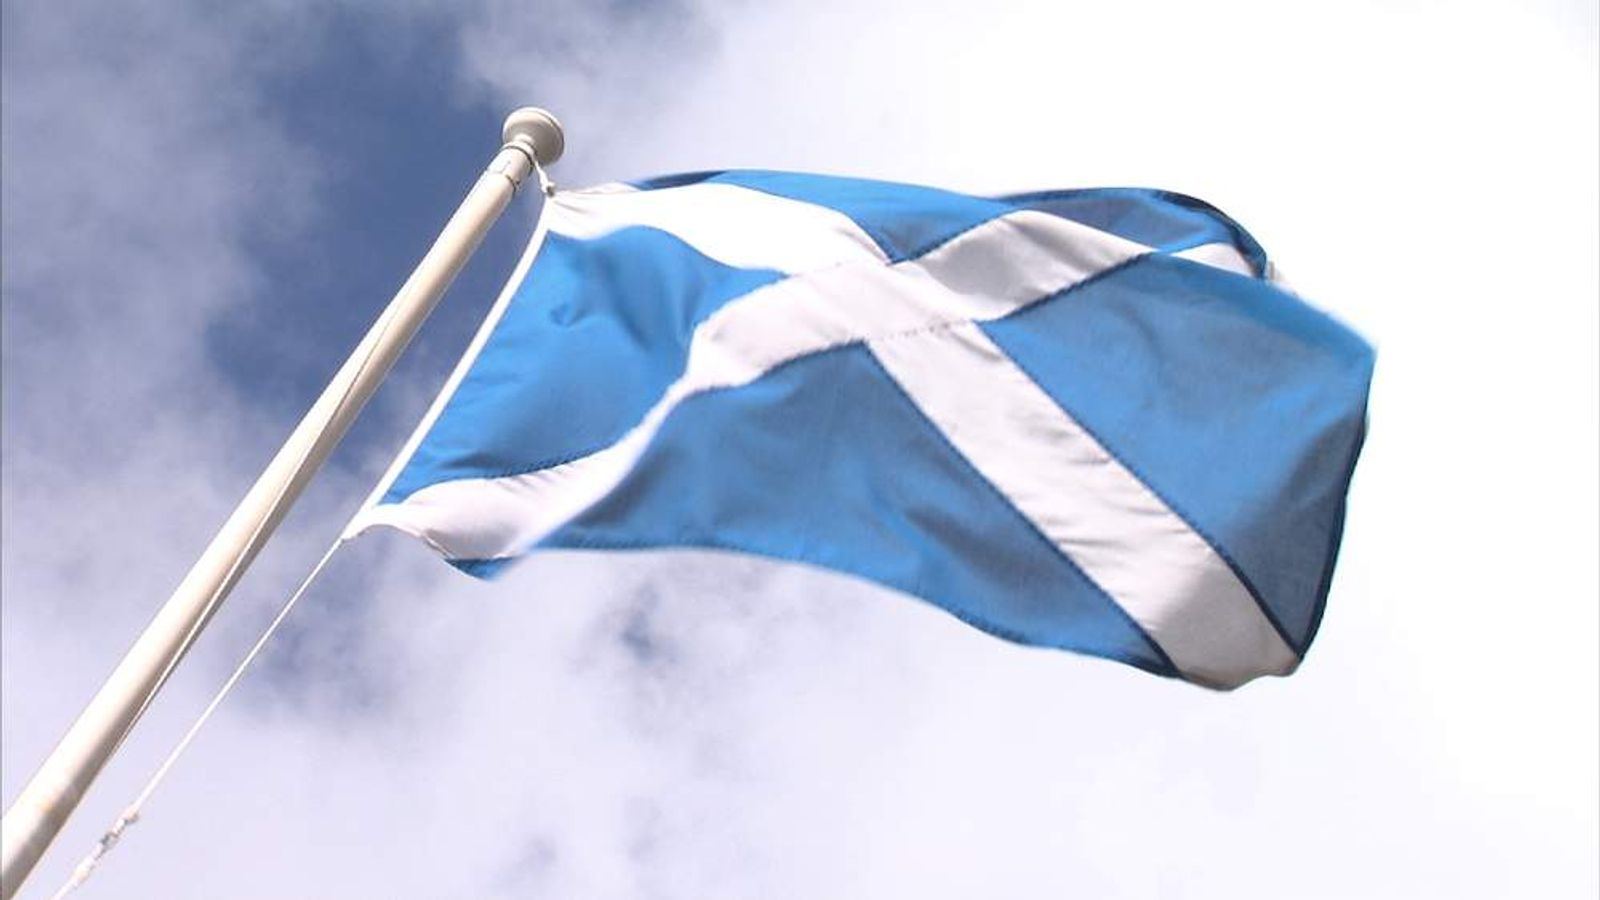 uploaded from saltire.jpg